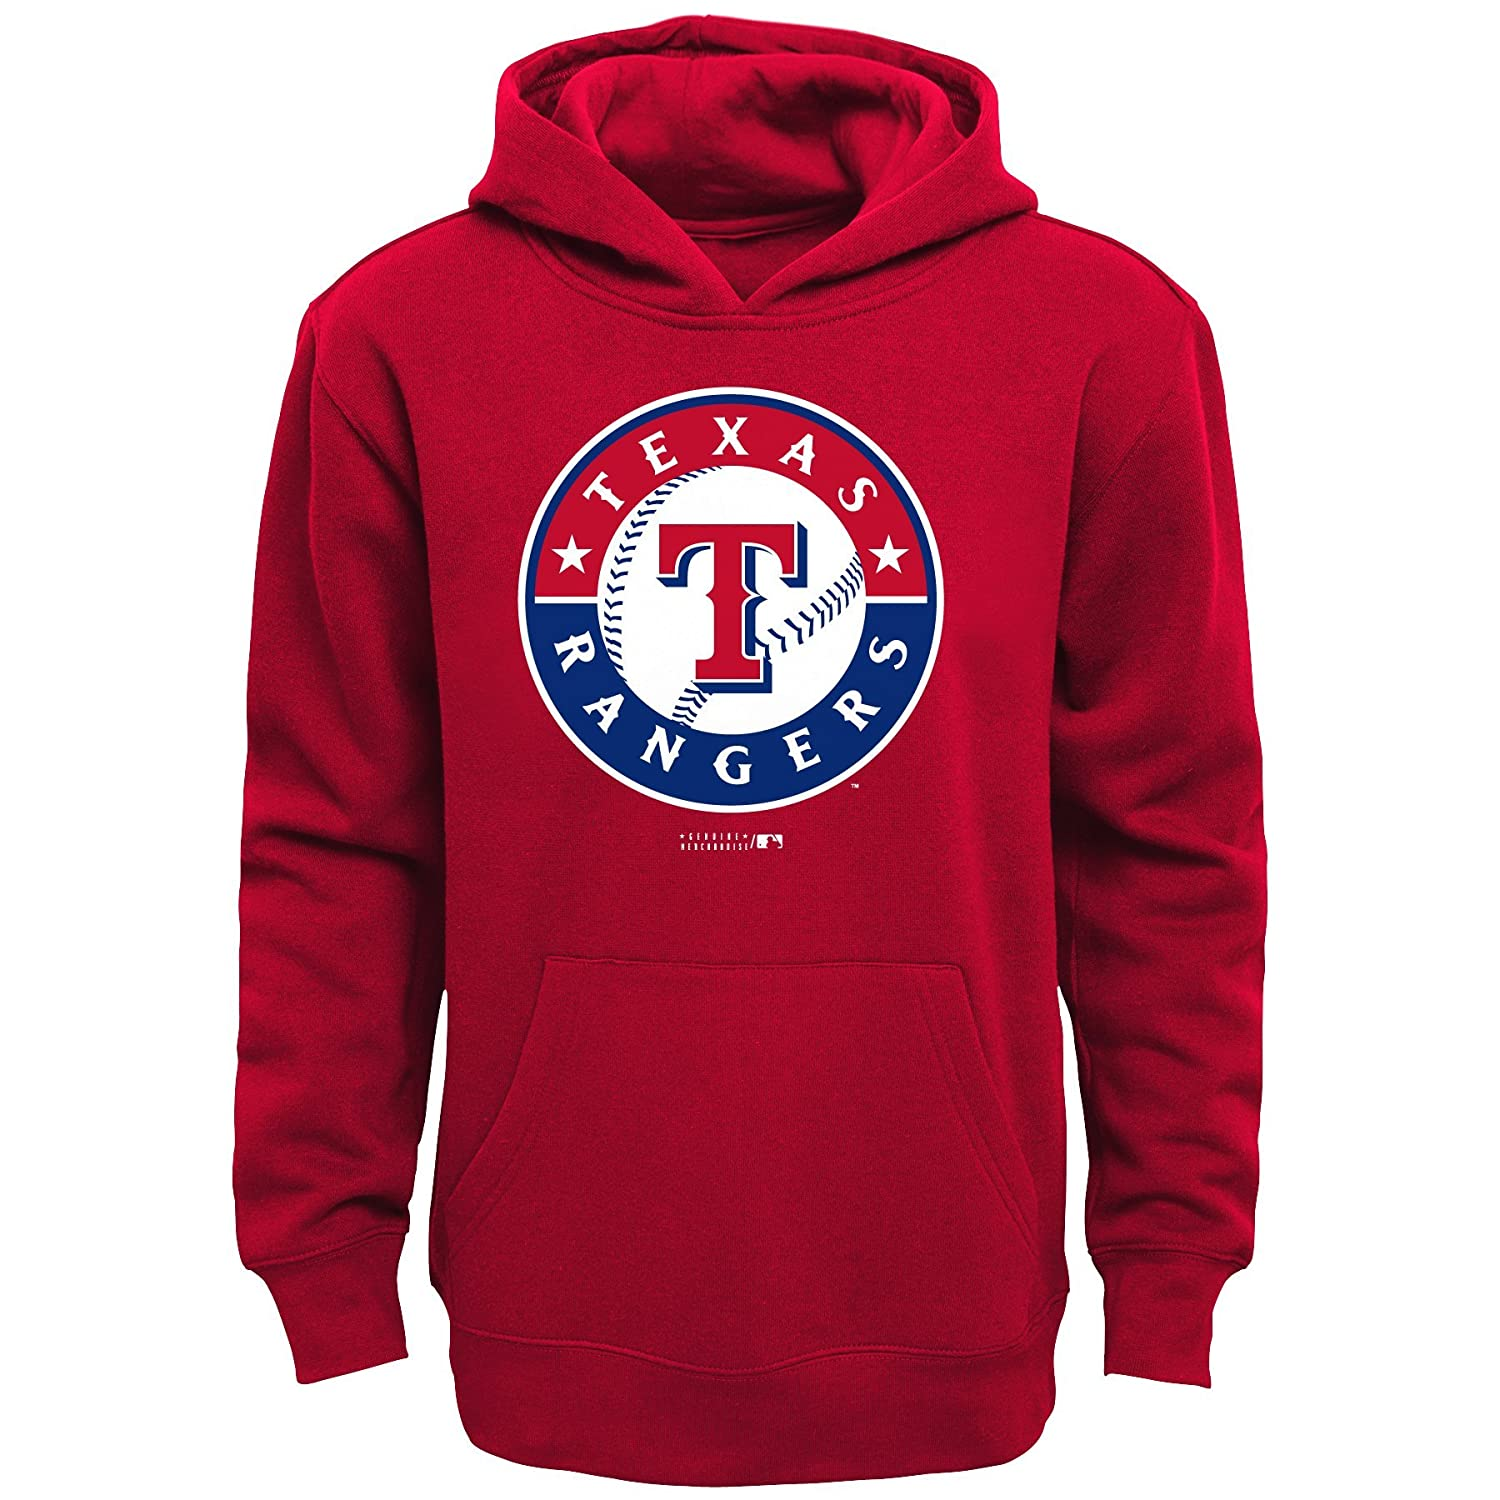 Athletic Red MLB Texas Rangers Boys Primary Logo Fleece Hoodie Size 18